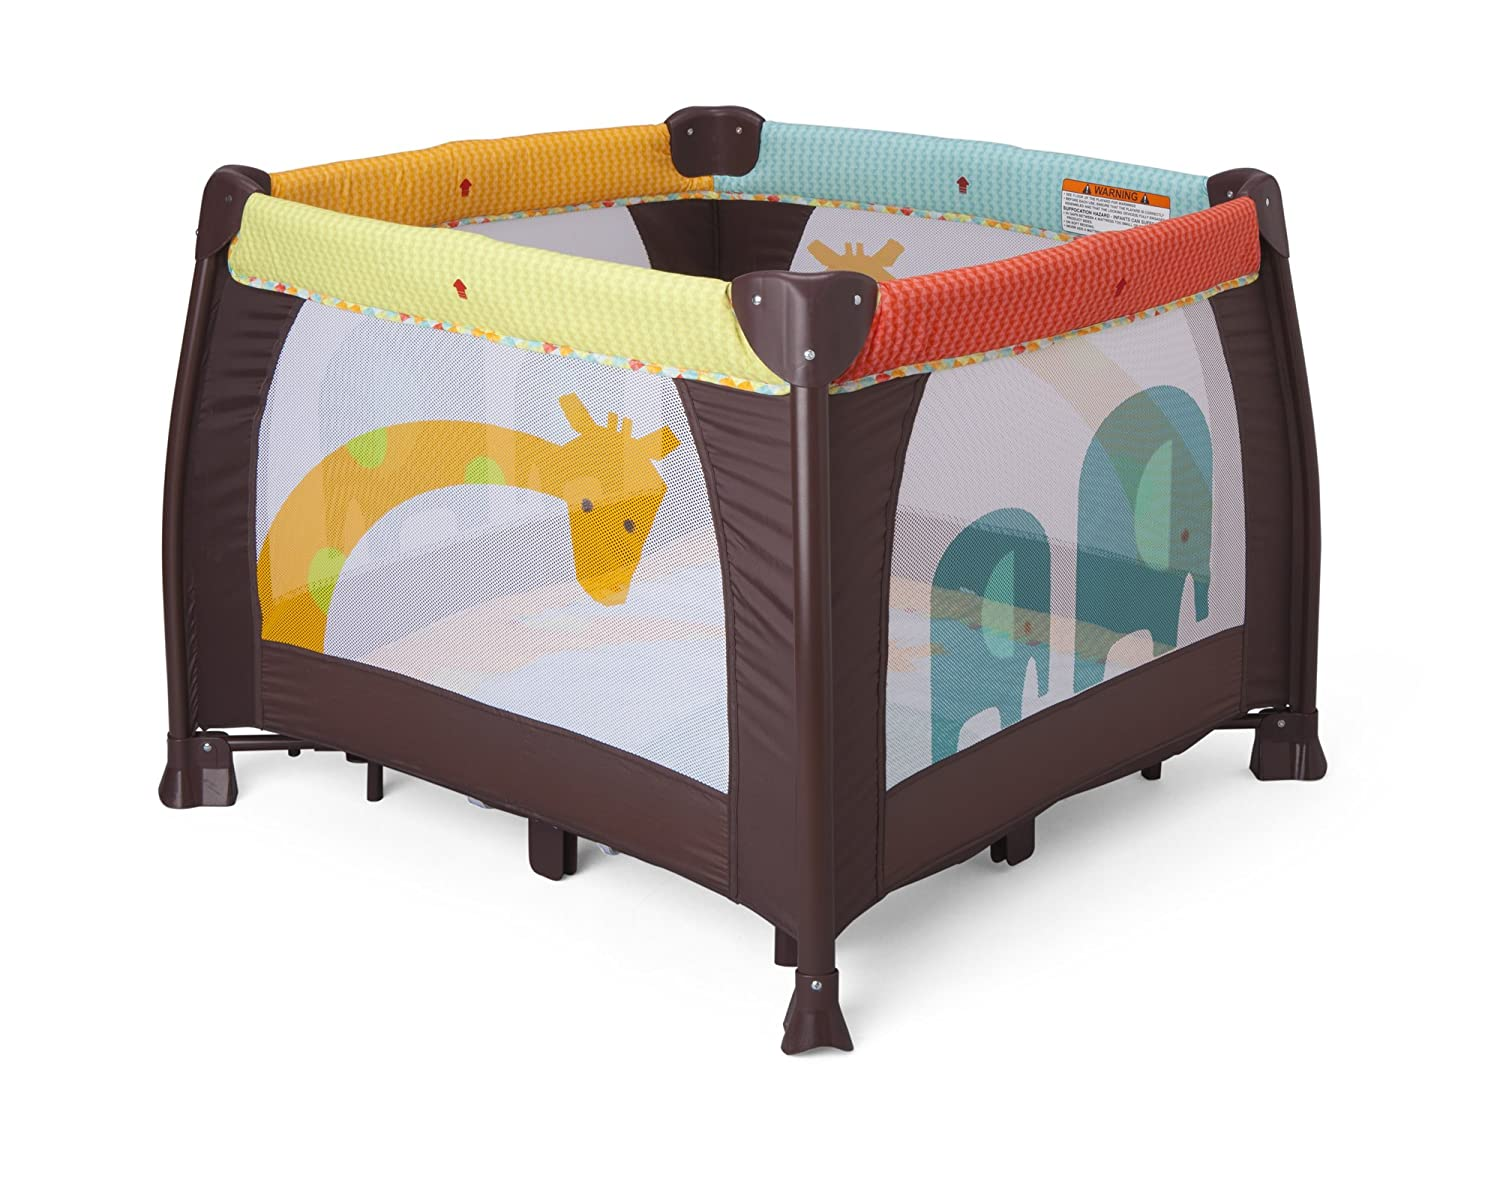 Delta Children 36 x 36 Playard, Novel Ideas Delta Children's Products 26003-241